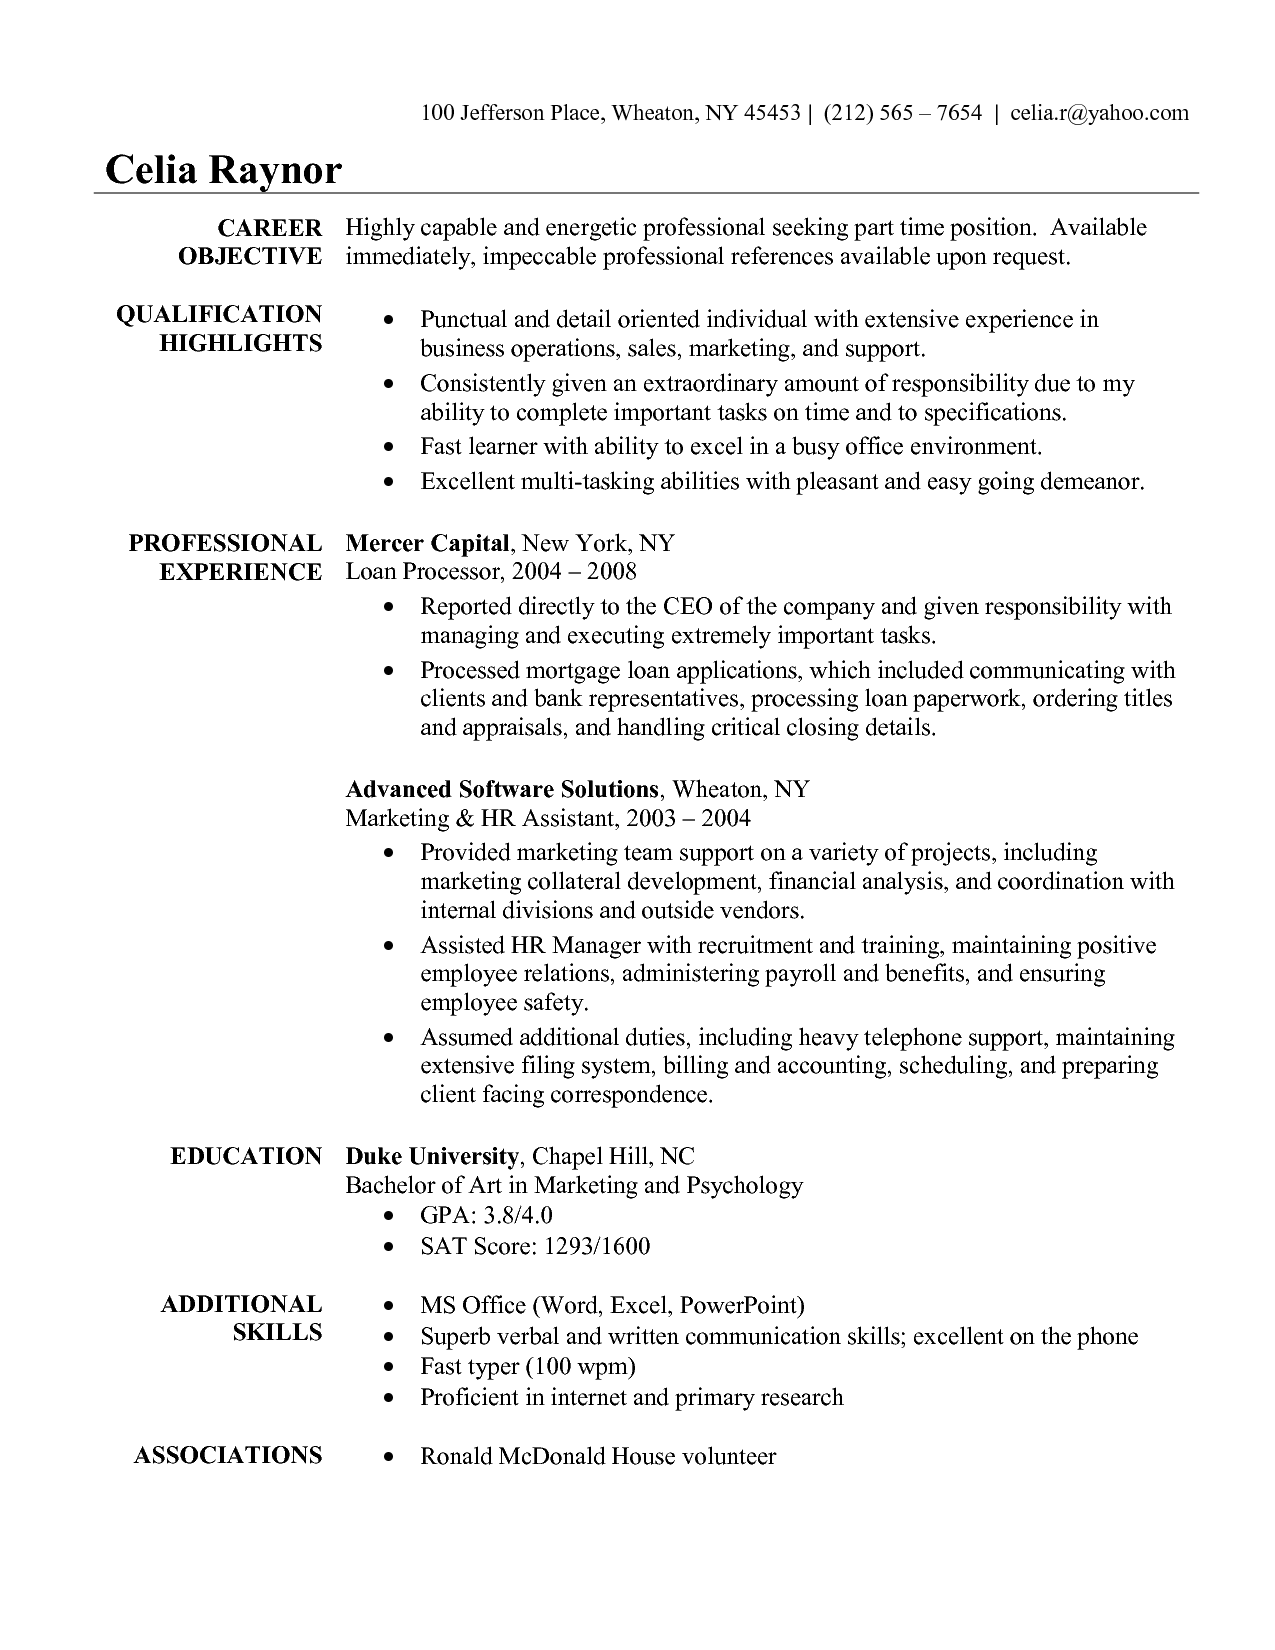 Resume Sample For Administrative Assistant Resume Samples